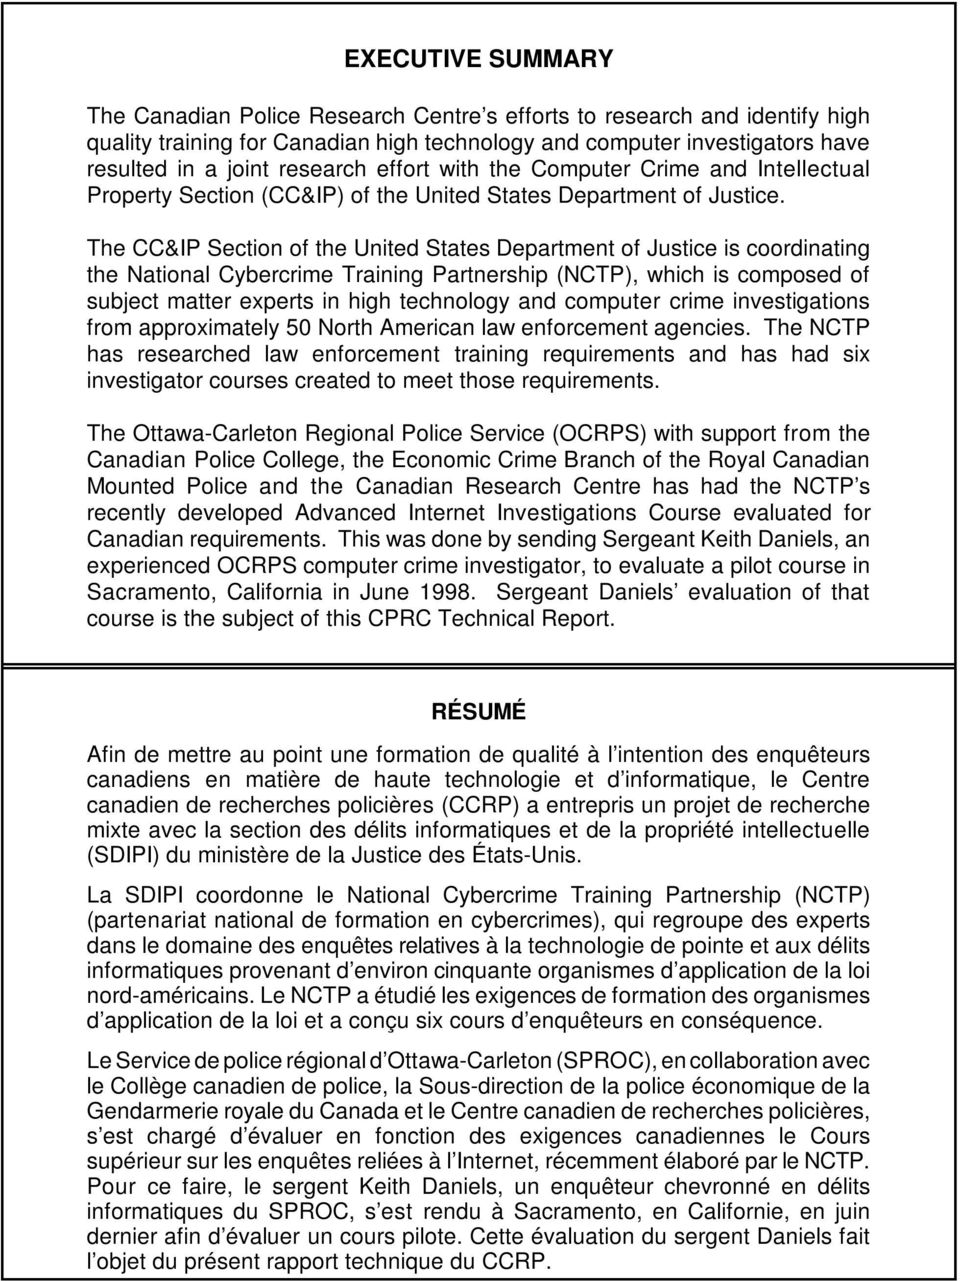 The CC&IP Section of the United States Department of Justice is coordinating the National Cybercrime Training Partnership (NCTP), which is composed of subject matter experts in high technology and